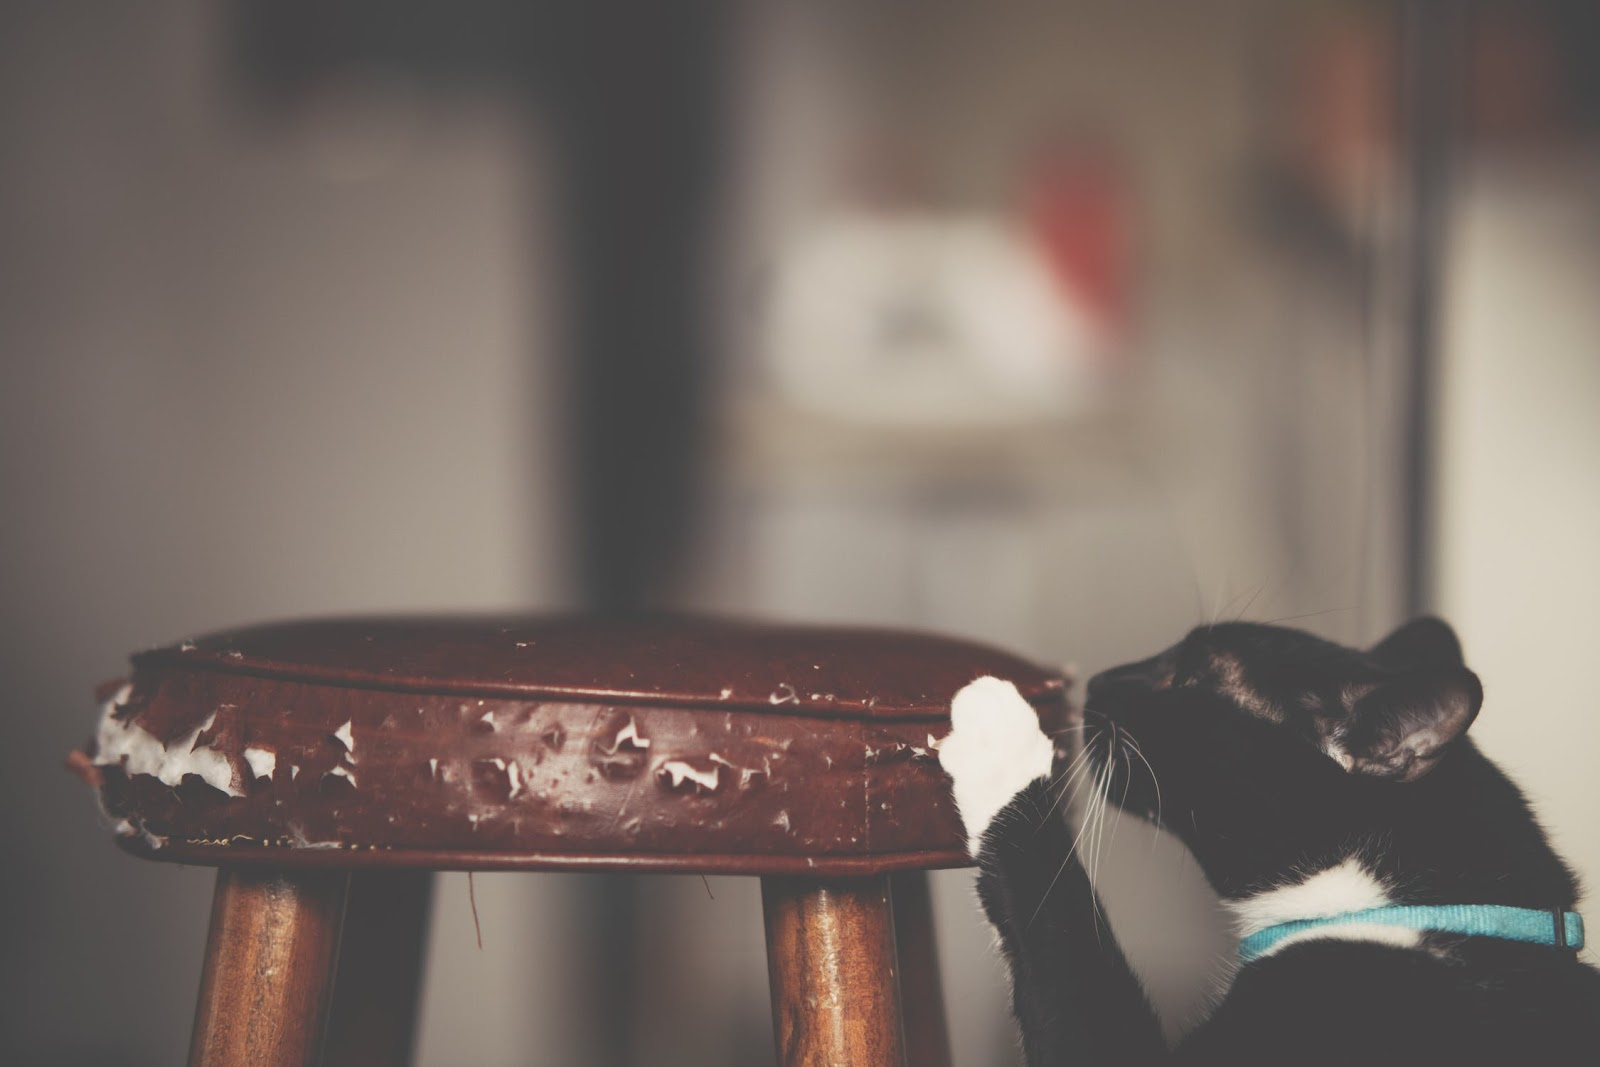 A black and white cat scratching a leather stool